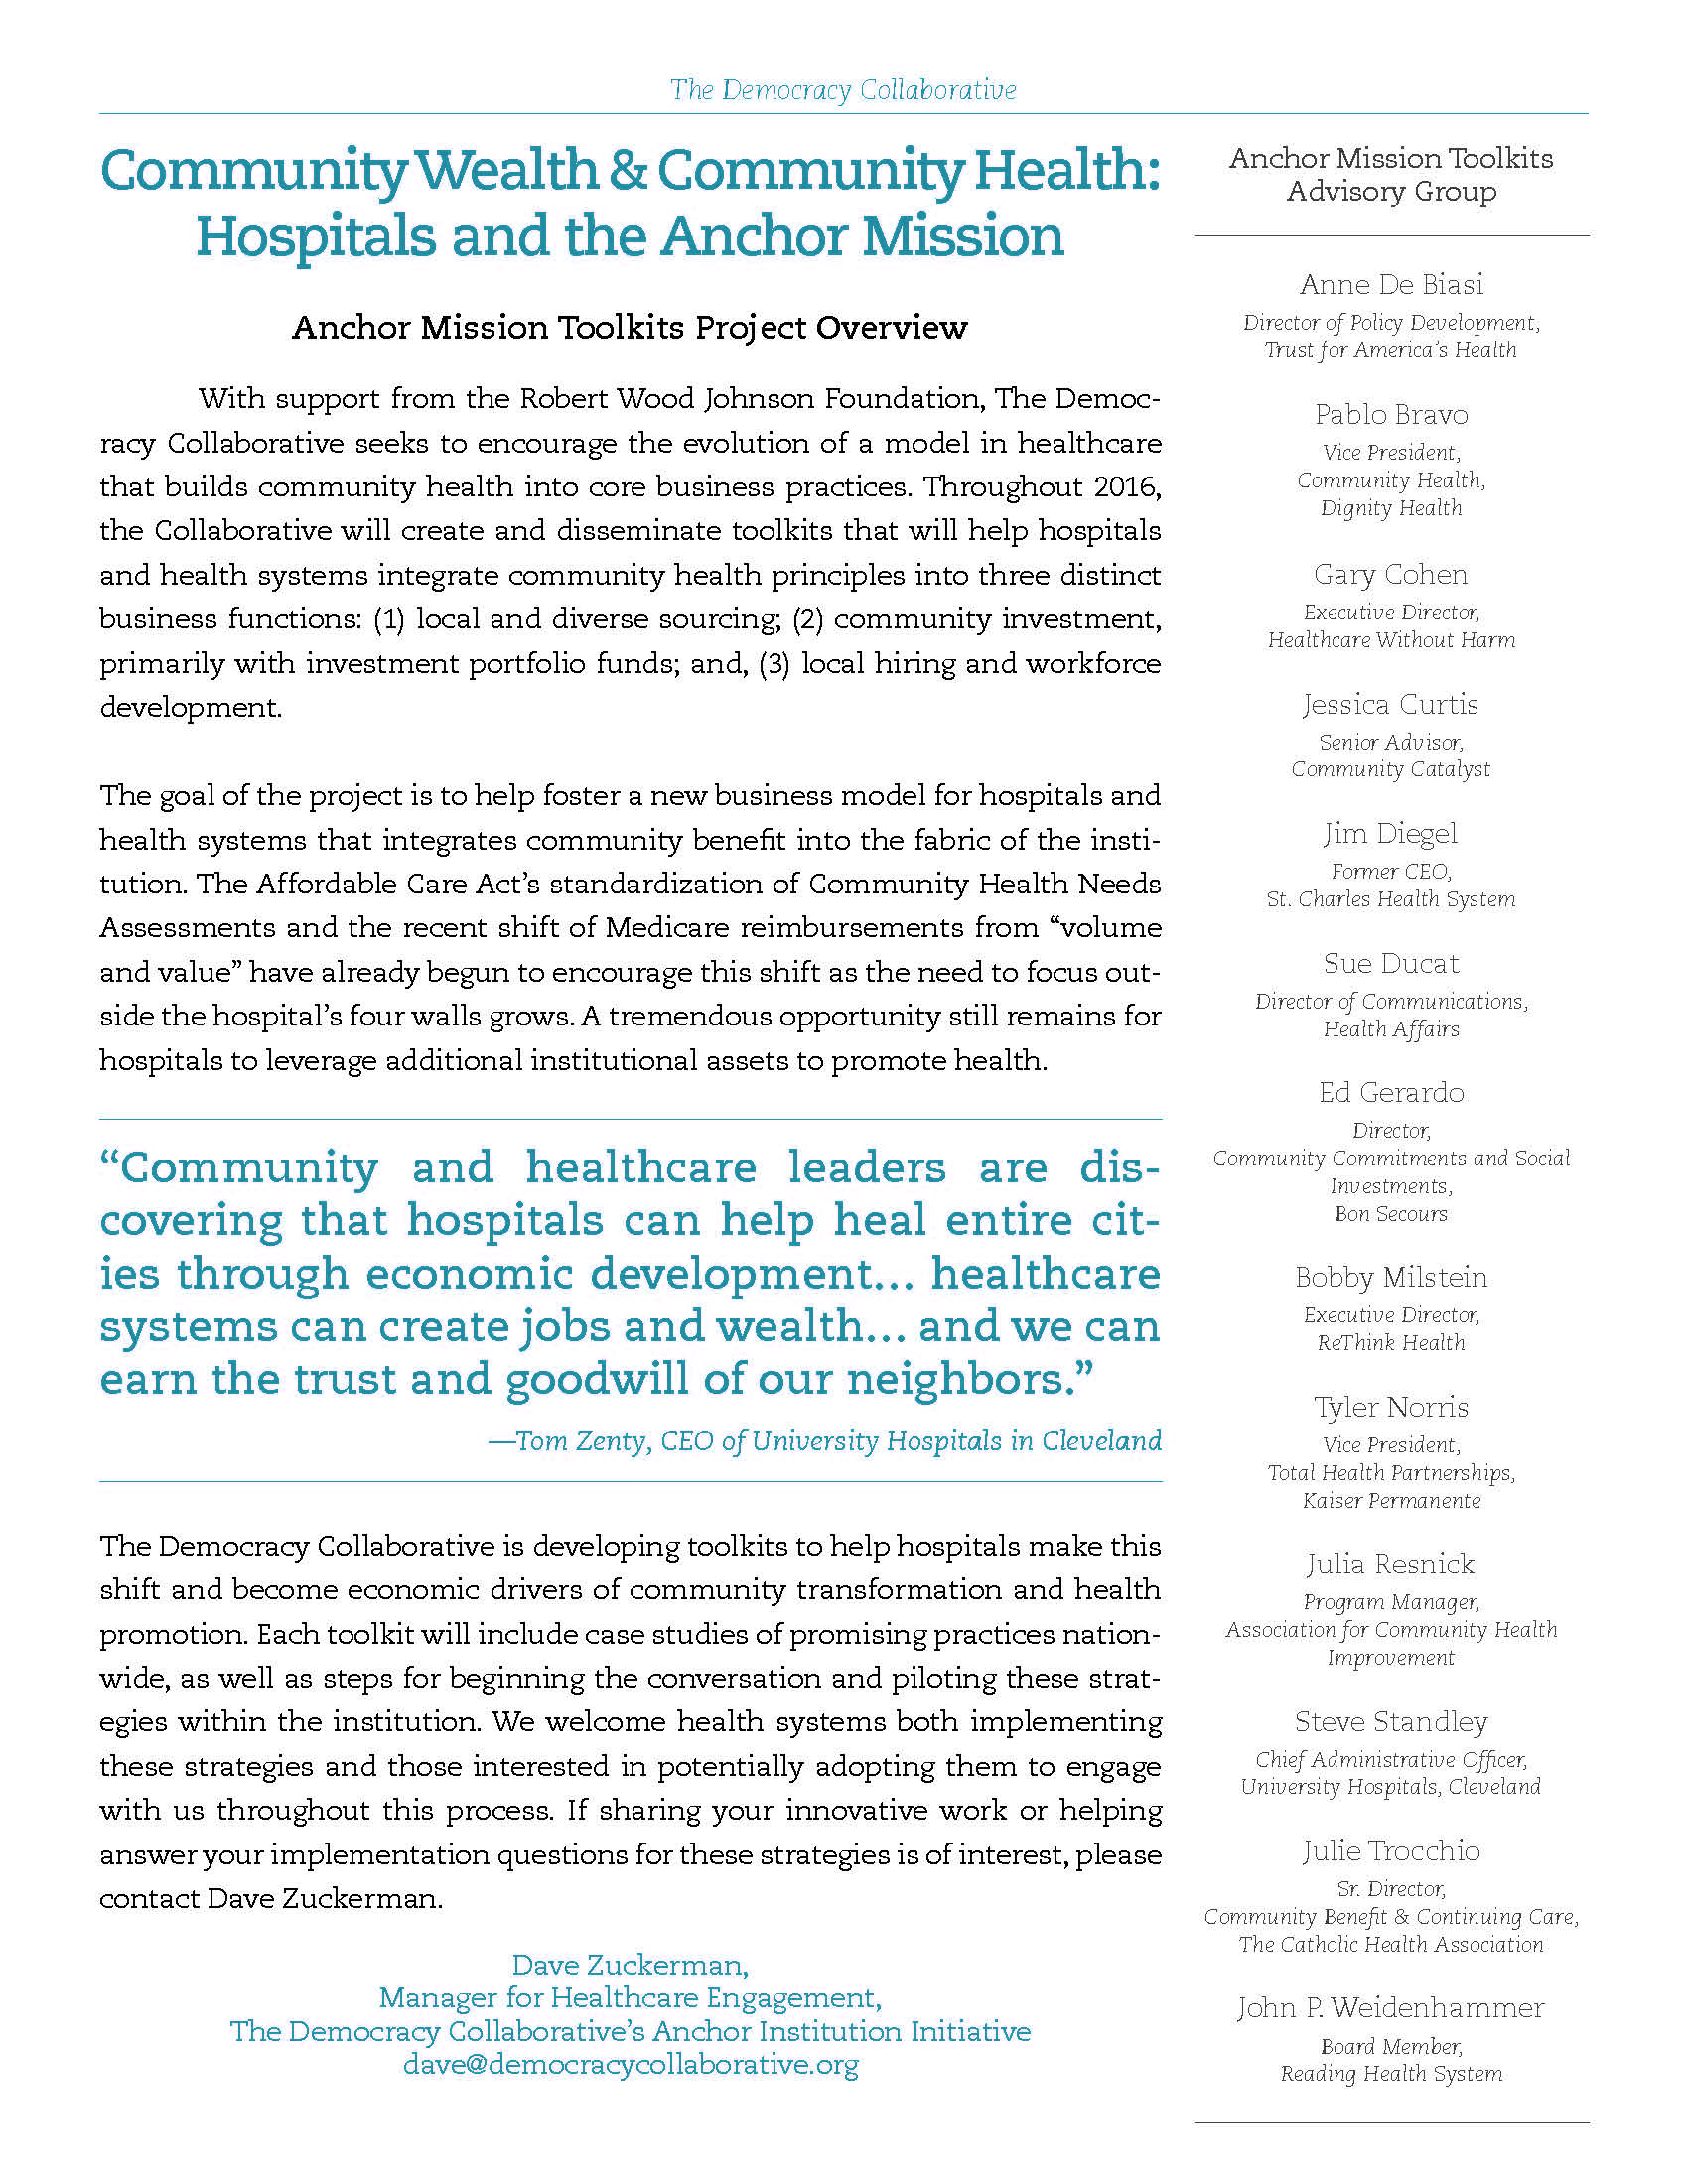 Toolkit: Community Wealth and Community Health: Hospitals